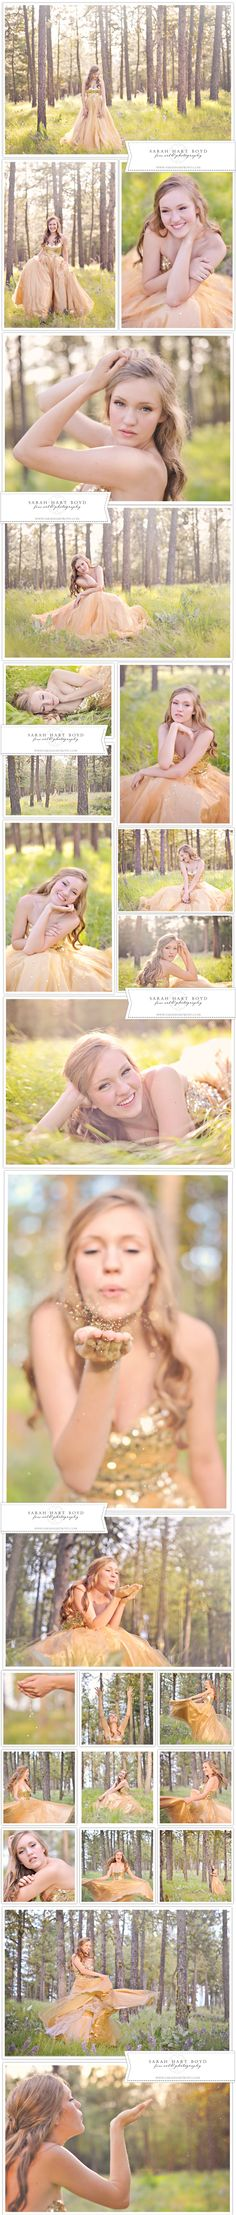 Whimsical Dress Session | Chelan, WA Senior Photographer » sarahhartboyd.com